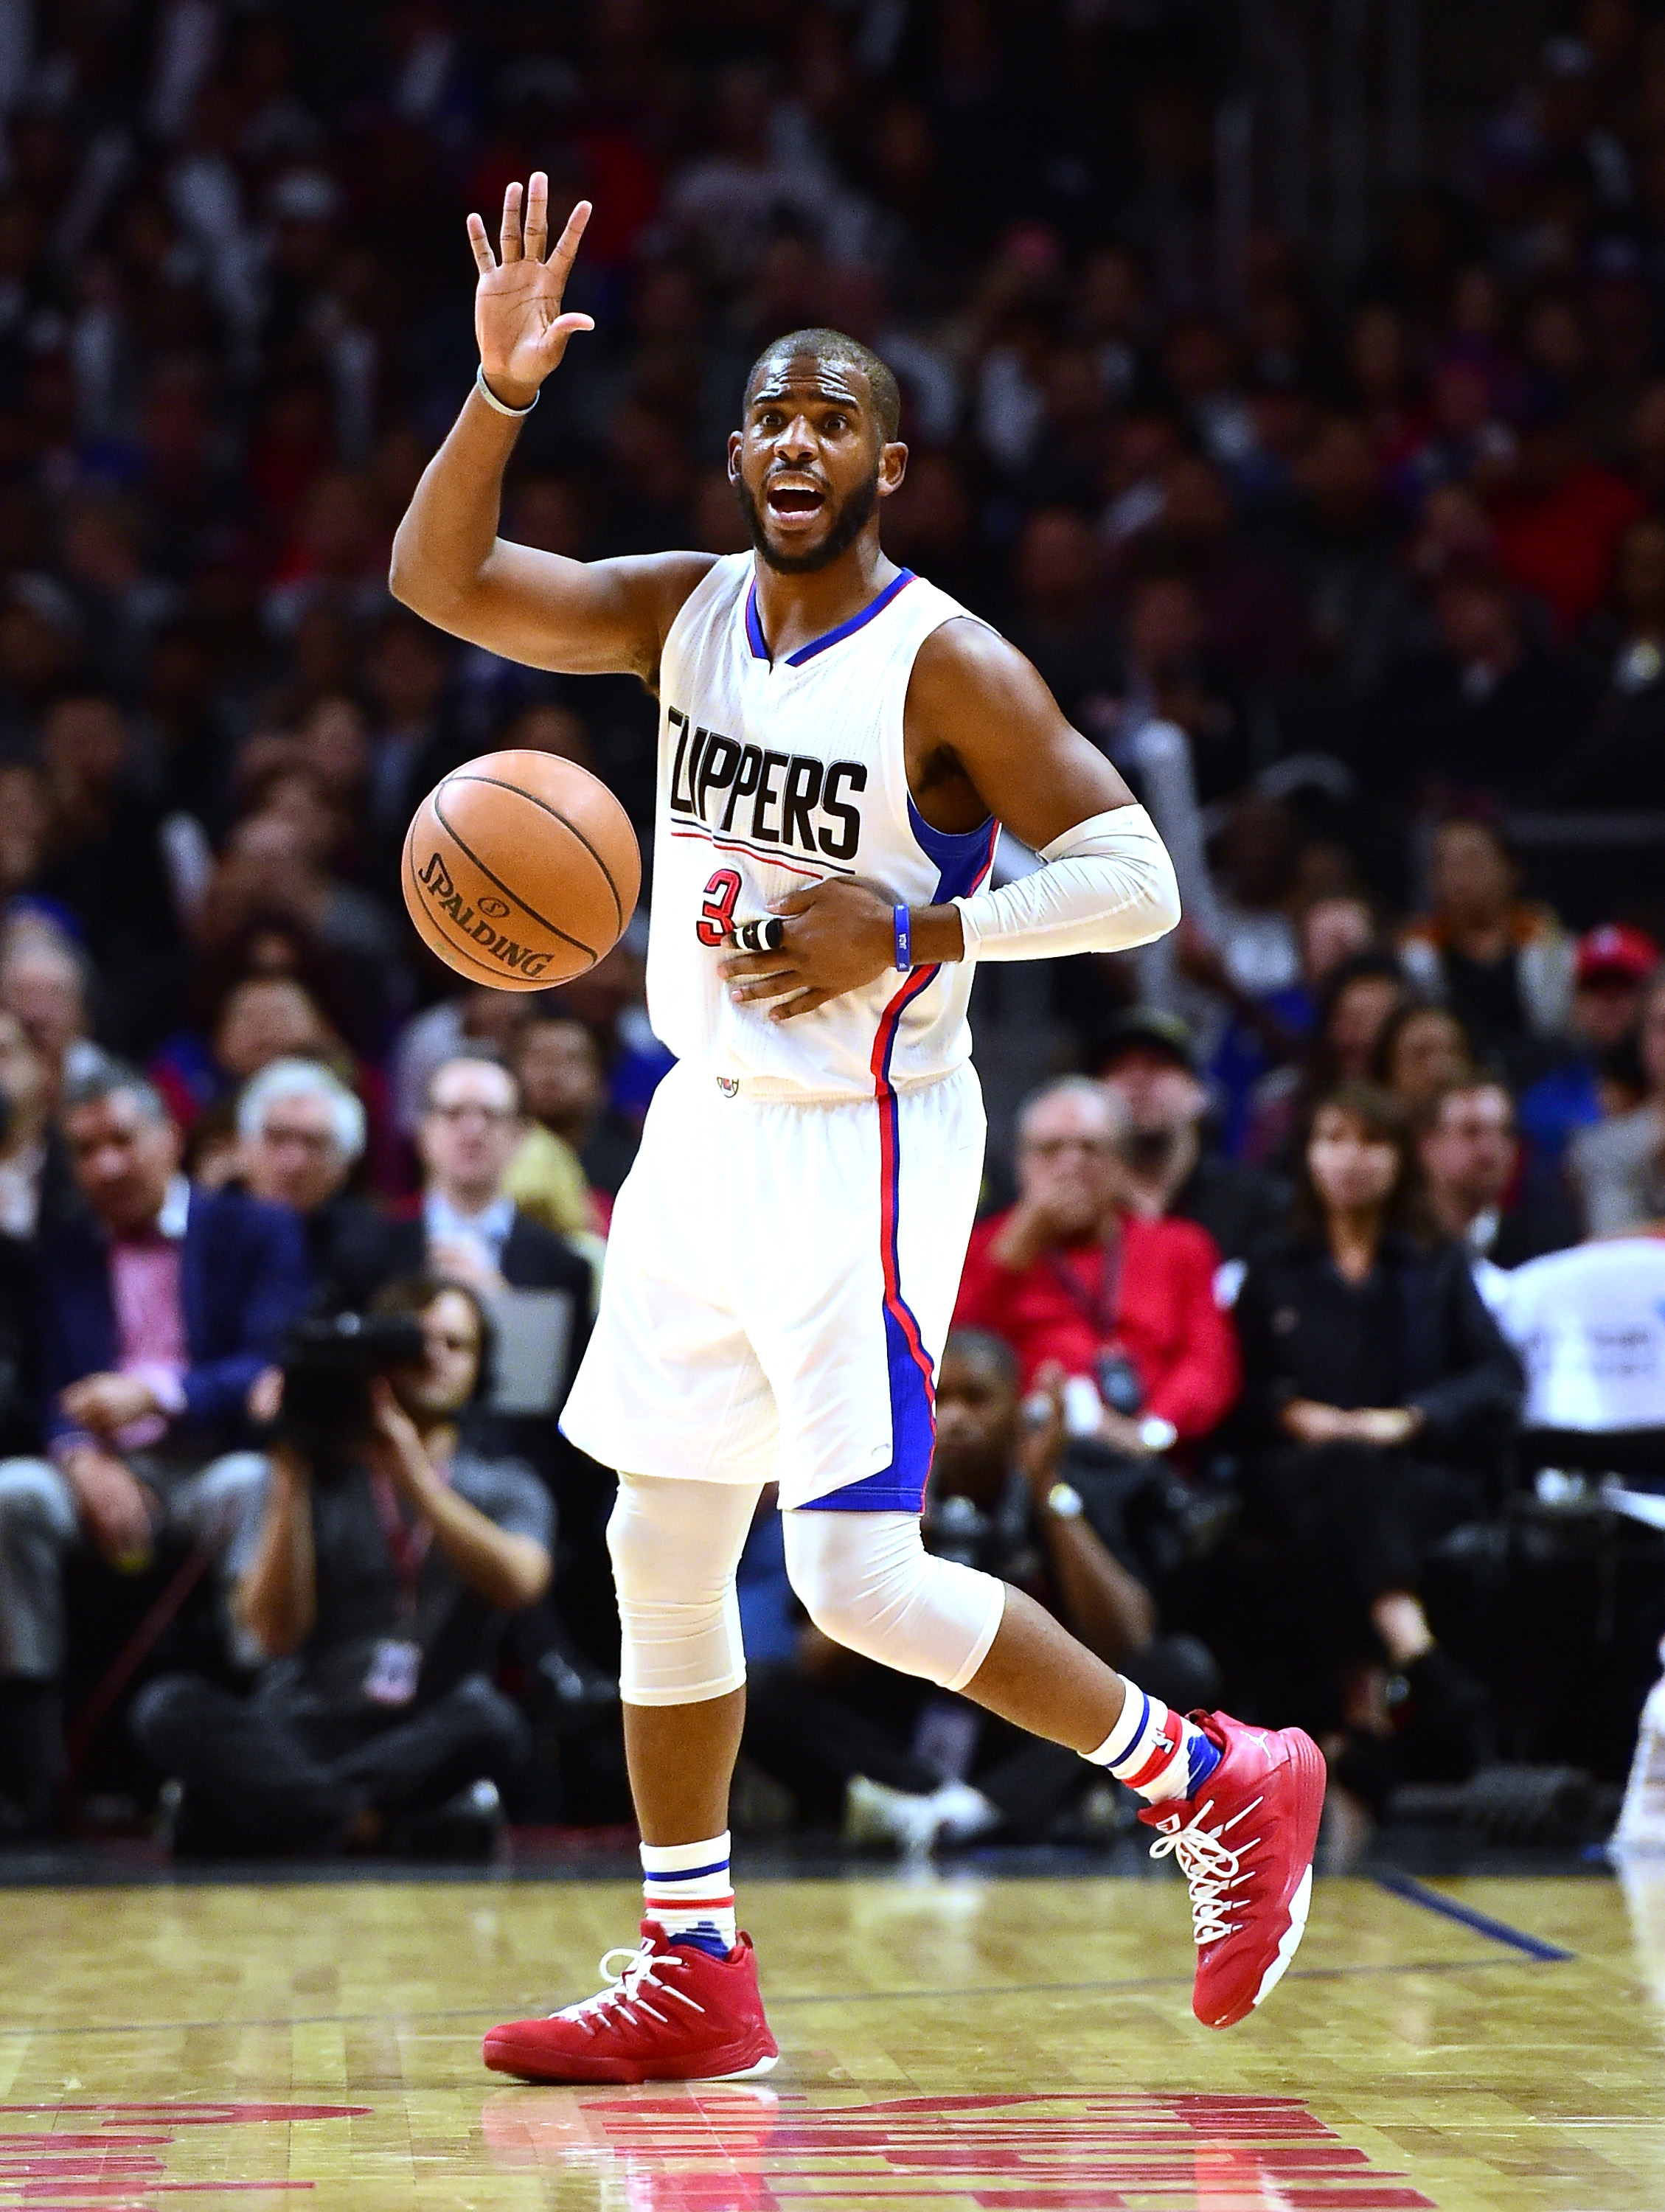 LOS ANGELES, CA - NOVEMBER 30:  Chris Paul #3 of the Los Angeles Clippers calls a play during a 102-87 Clipper win over the Portland Trail Blazers at Staples Center on November 30, 2015 in Los Angeles, California.  (Photo by Harry How/Getty Images)